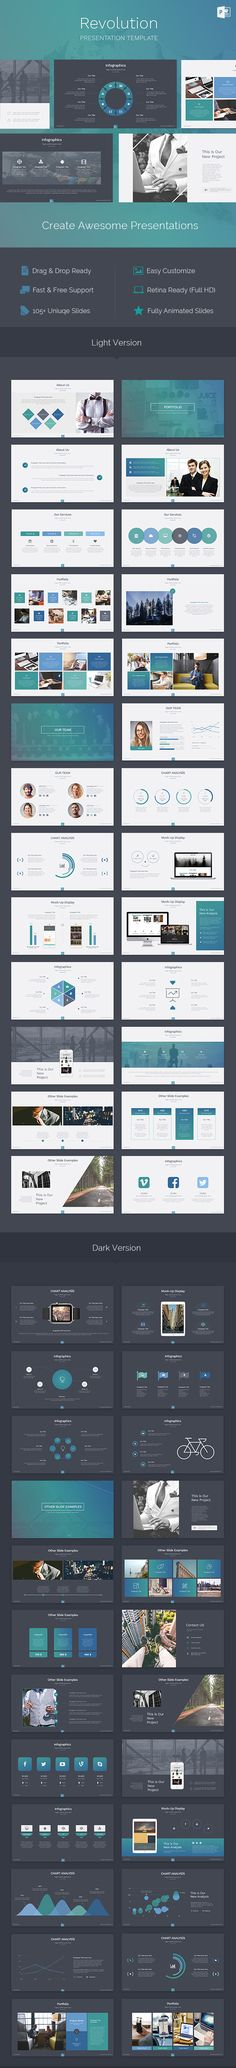 Revolution - Creative Powerpoint Template - PowerPoint Templates Presentation…